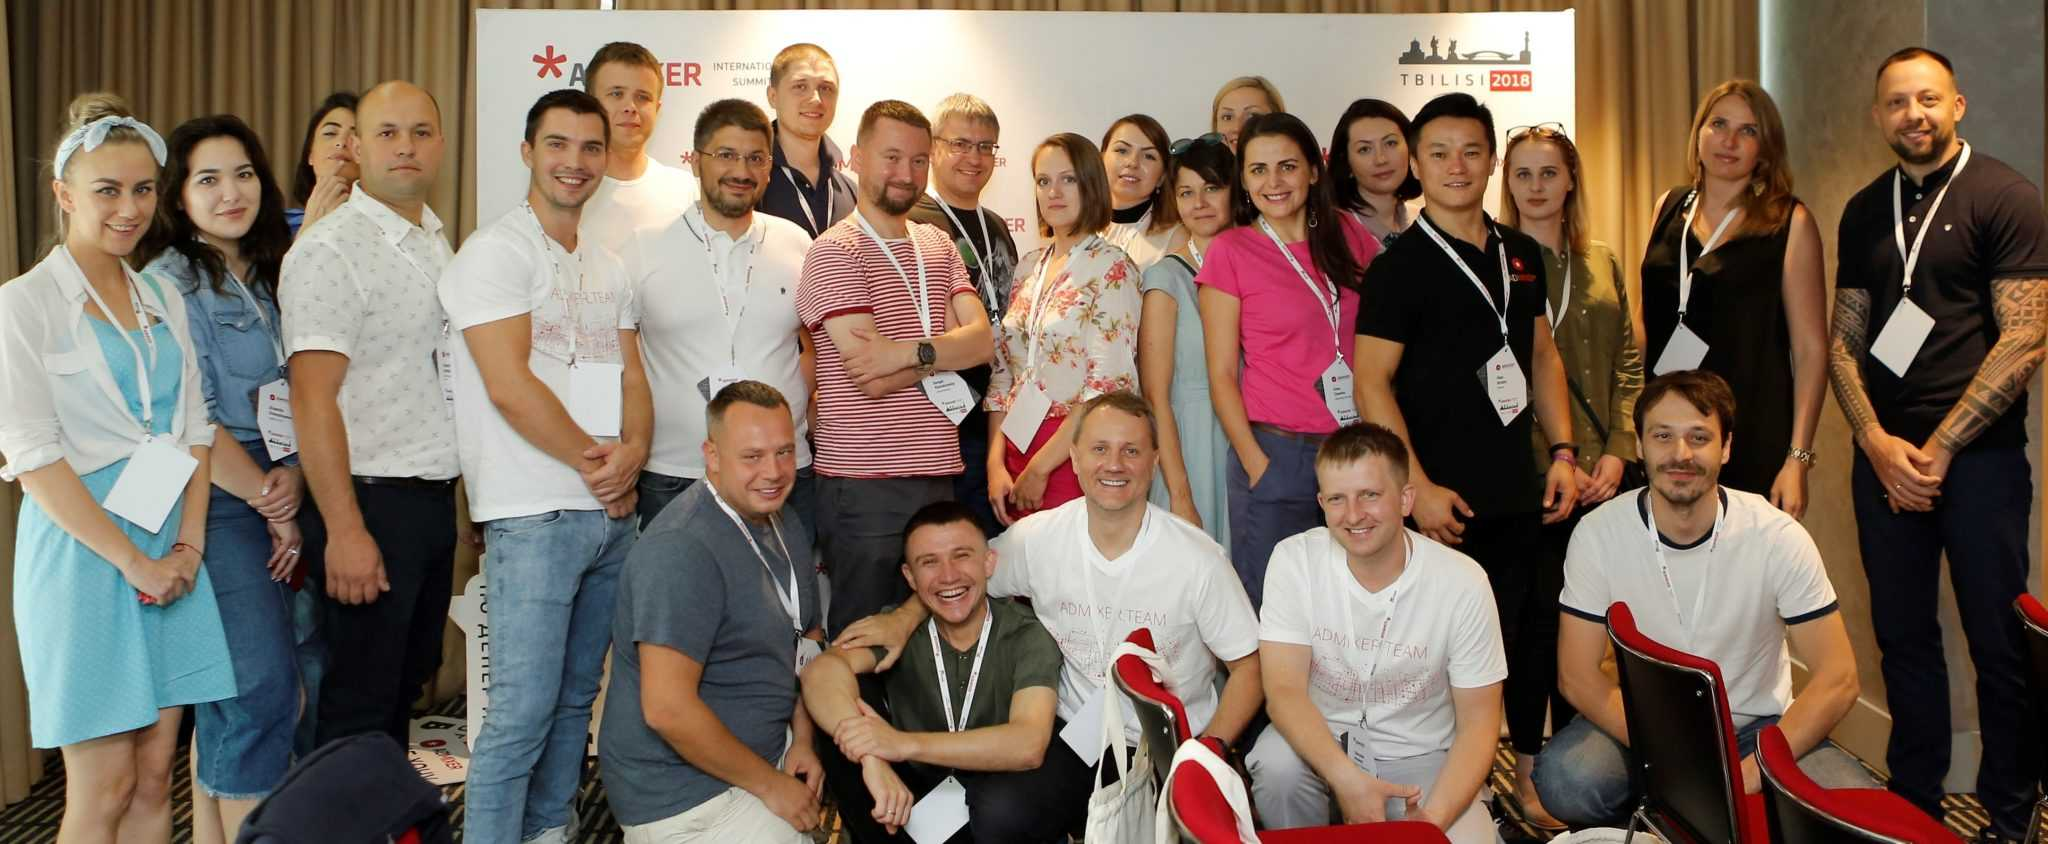 Admixer International Team